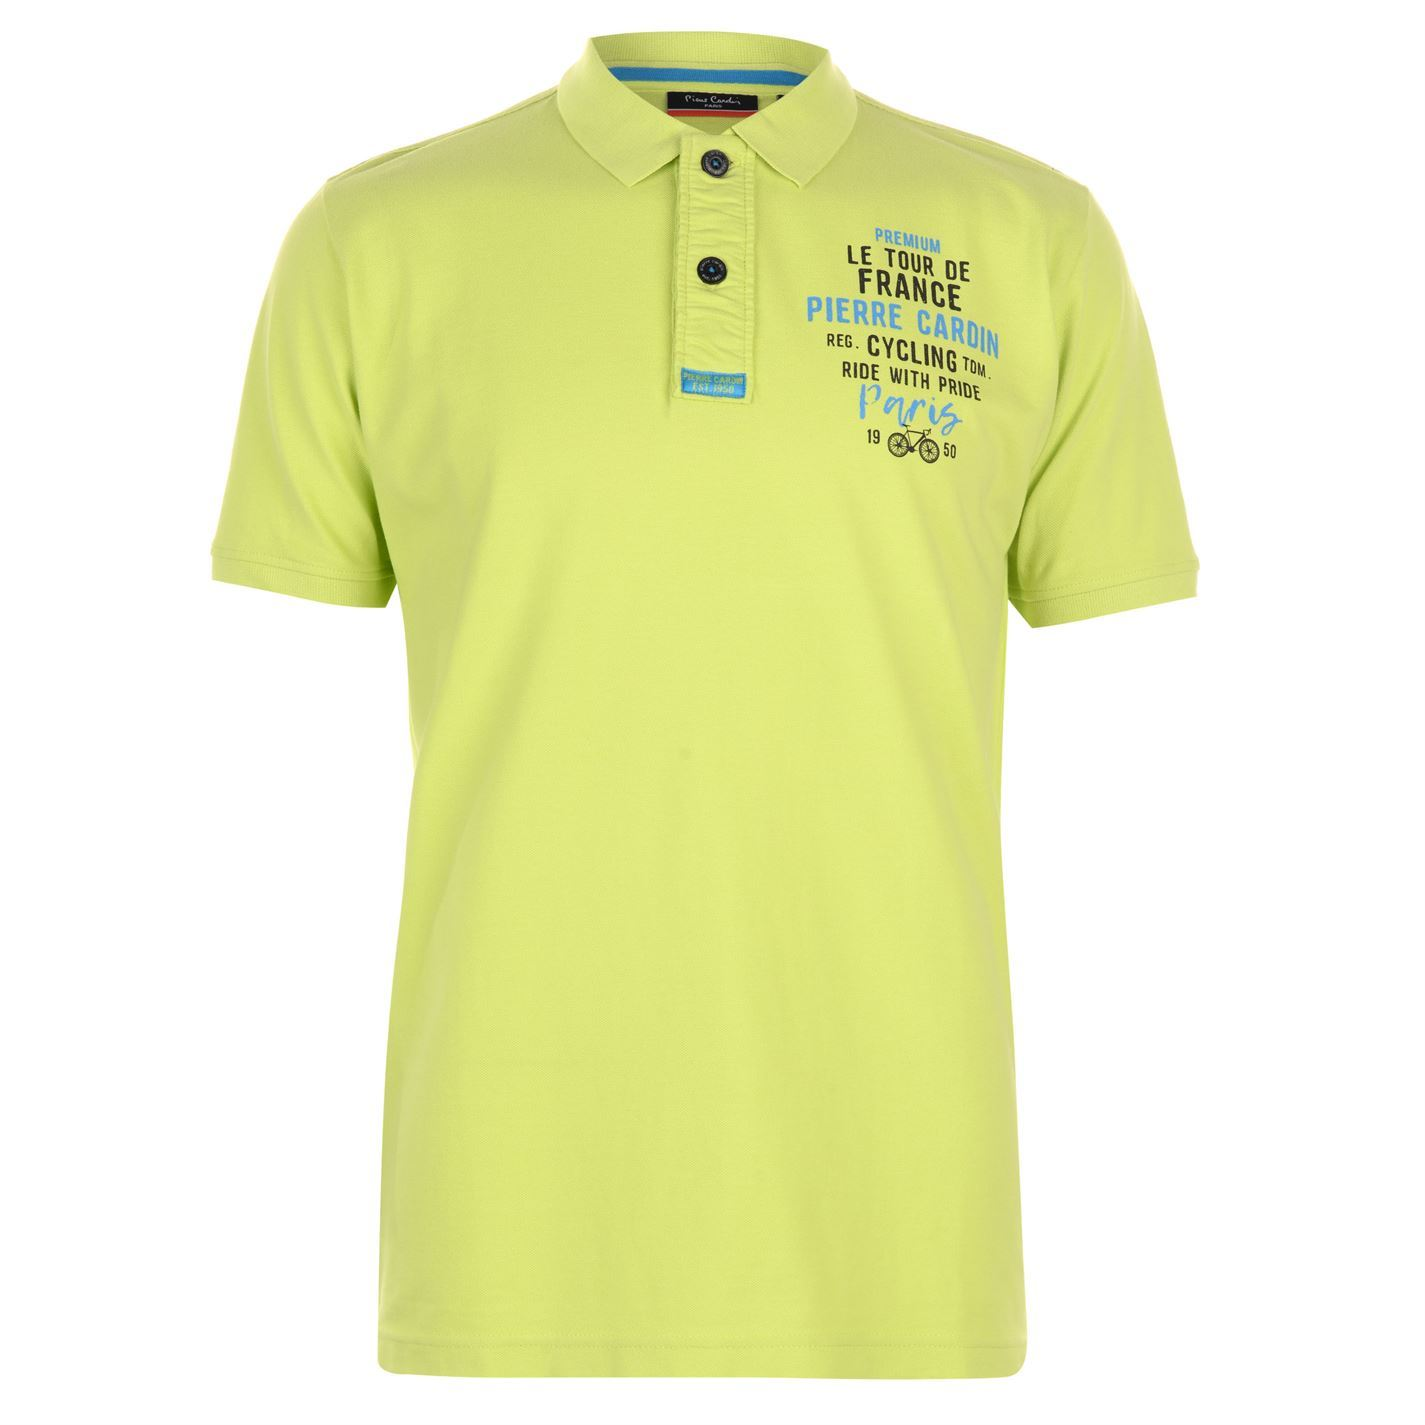 6d7505a70 Pierre Cardin Cycling Ride With Pride Polo Shirt Mens Top Tee Casual T-Shirt